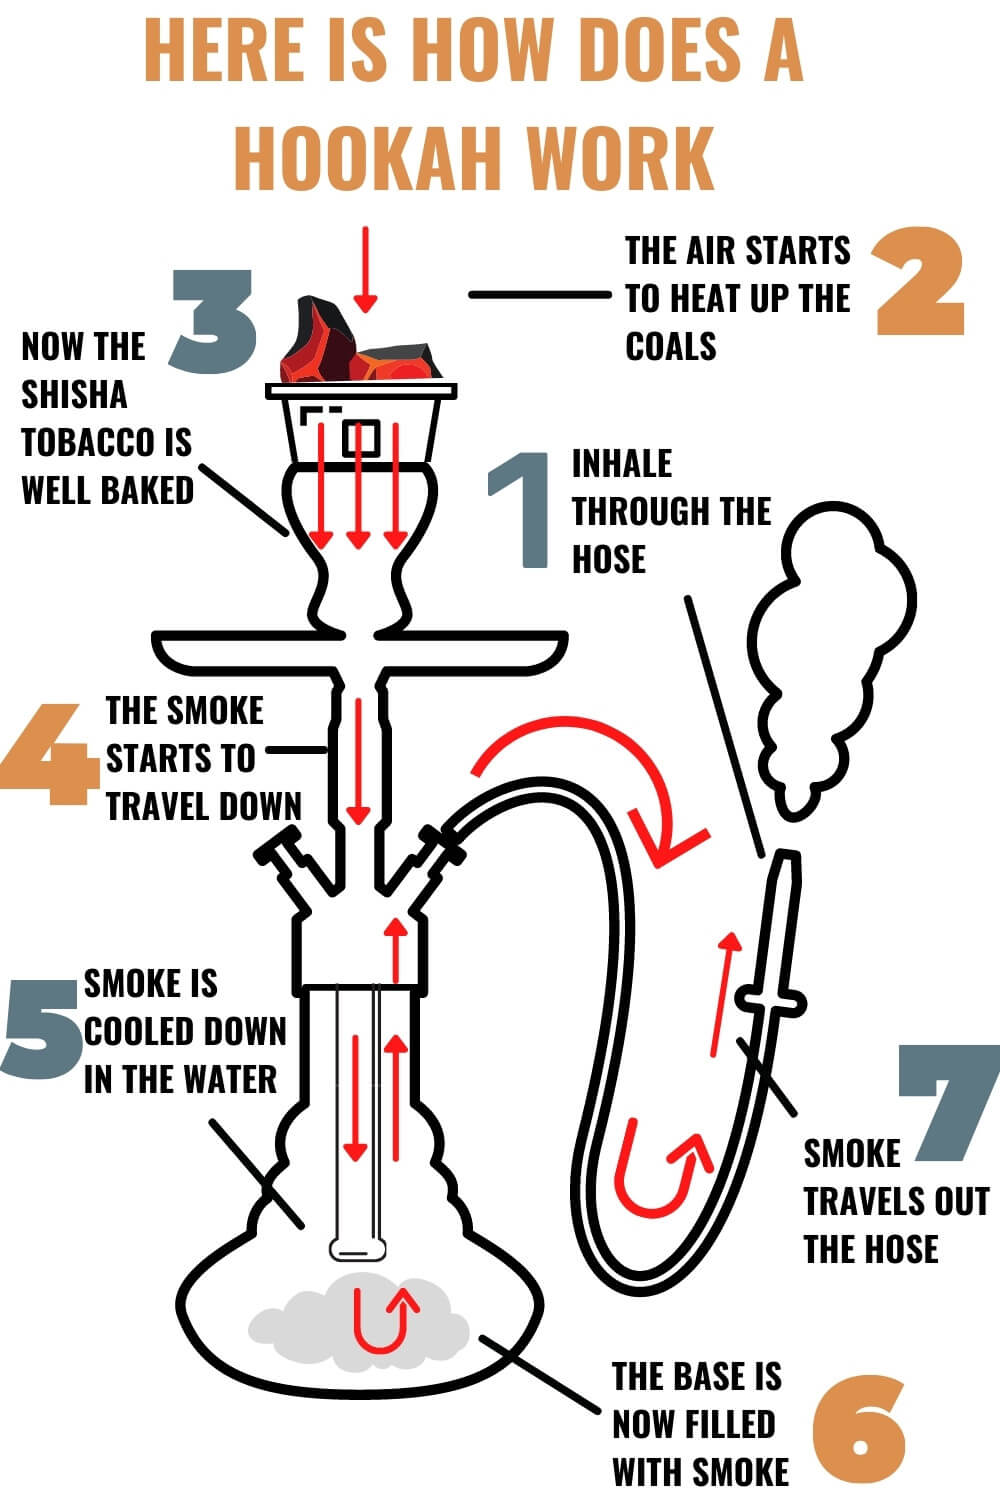 How does a hookah work - Infographic